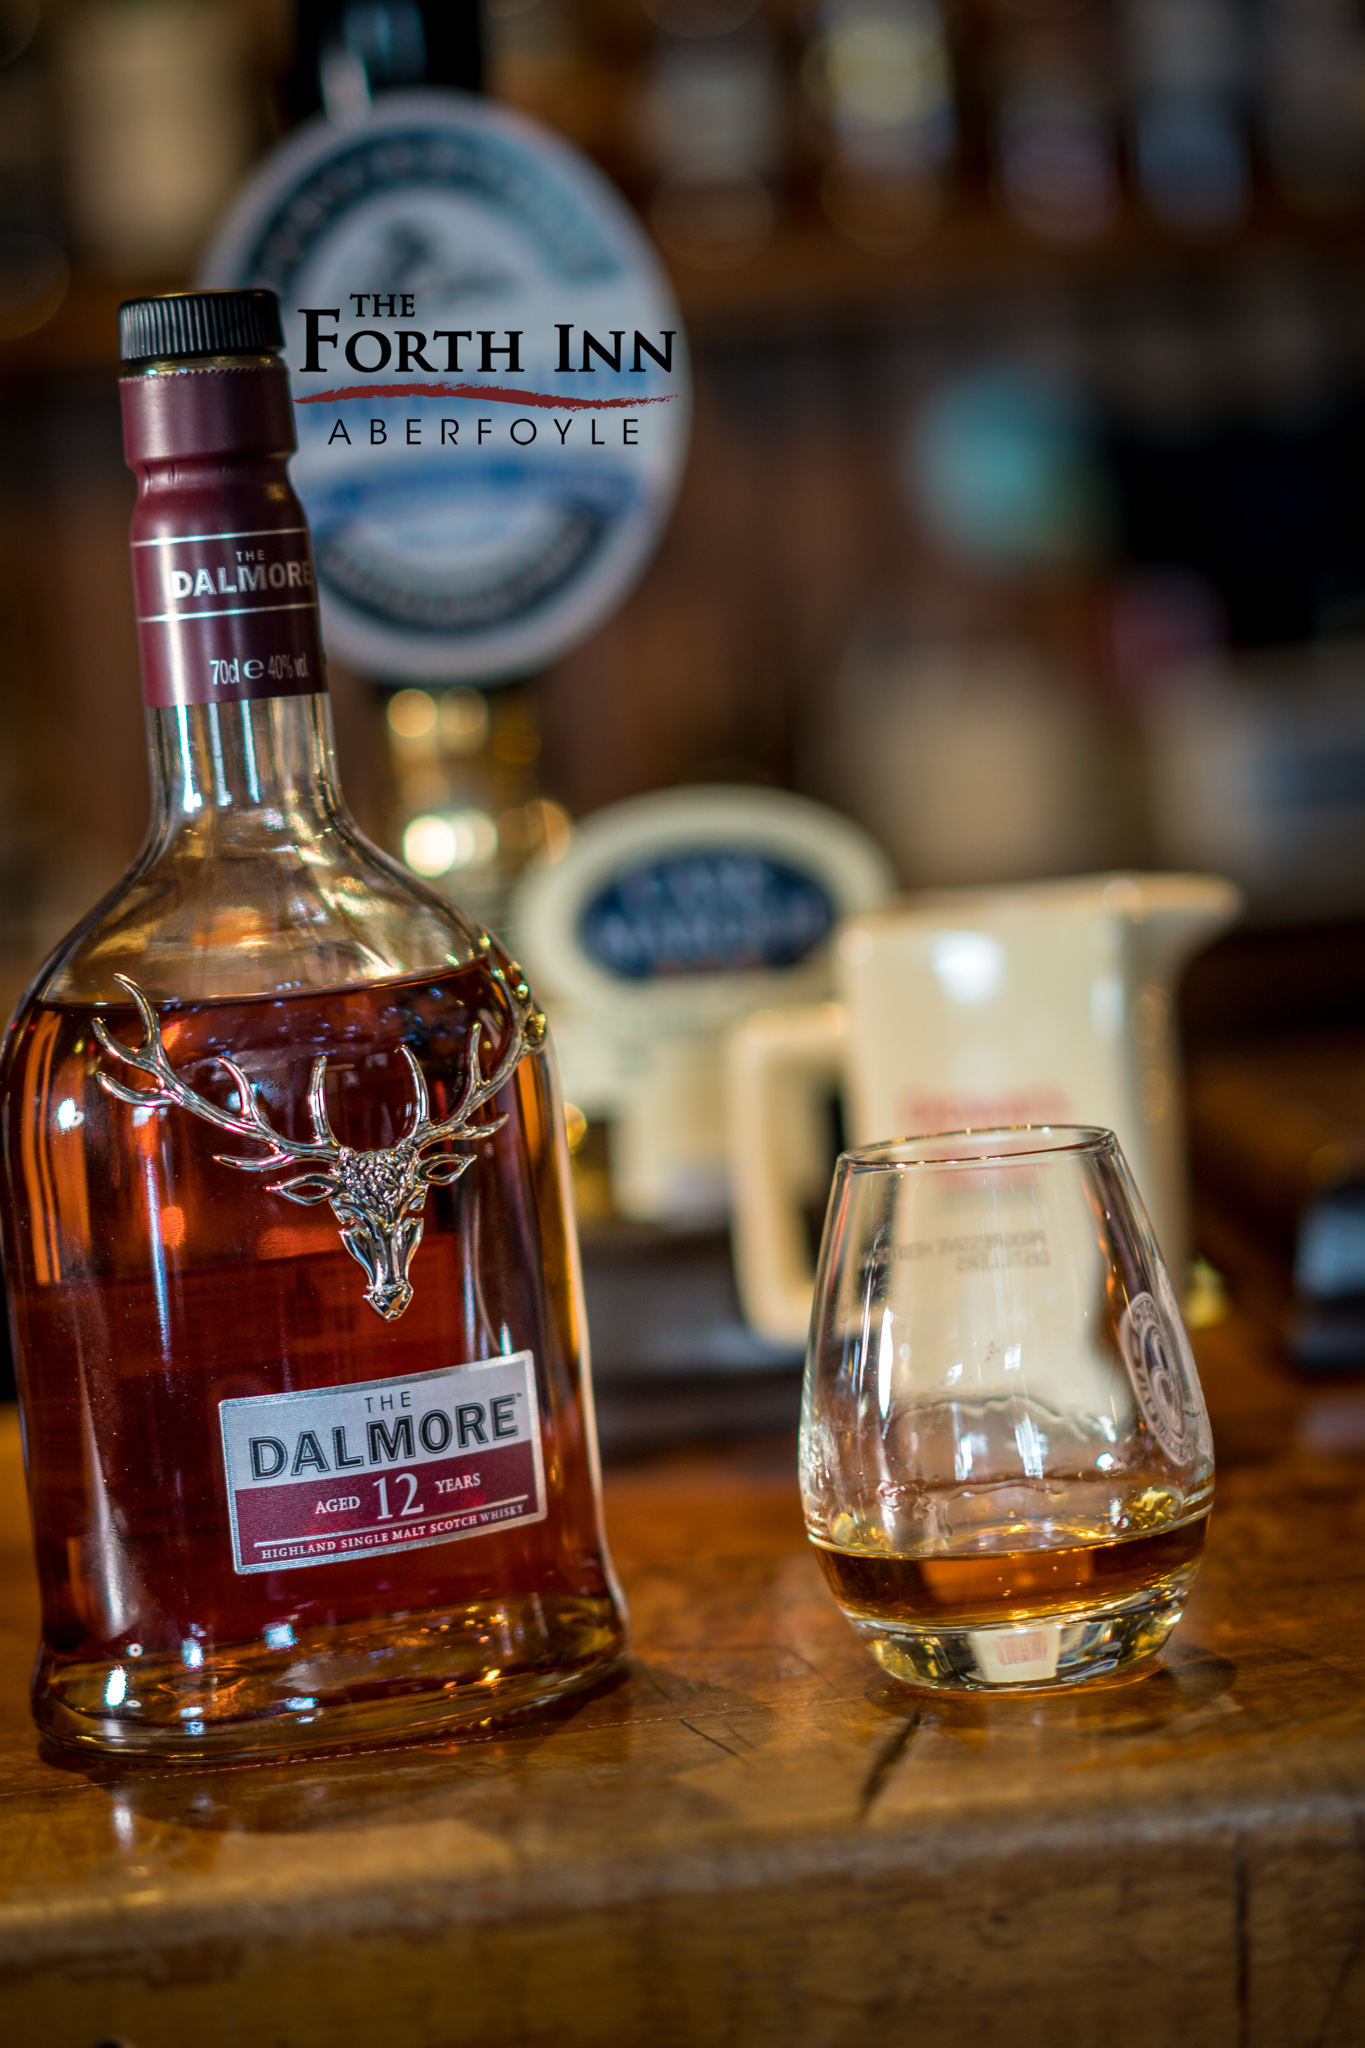 The Dalmore @ The Forth Inn